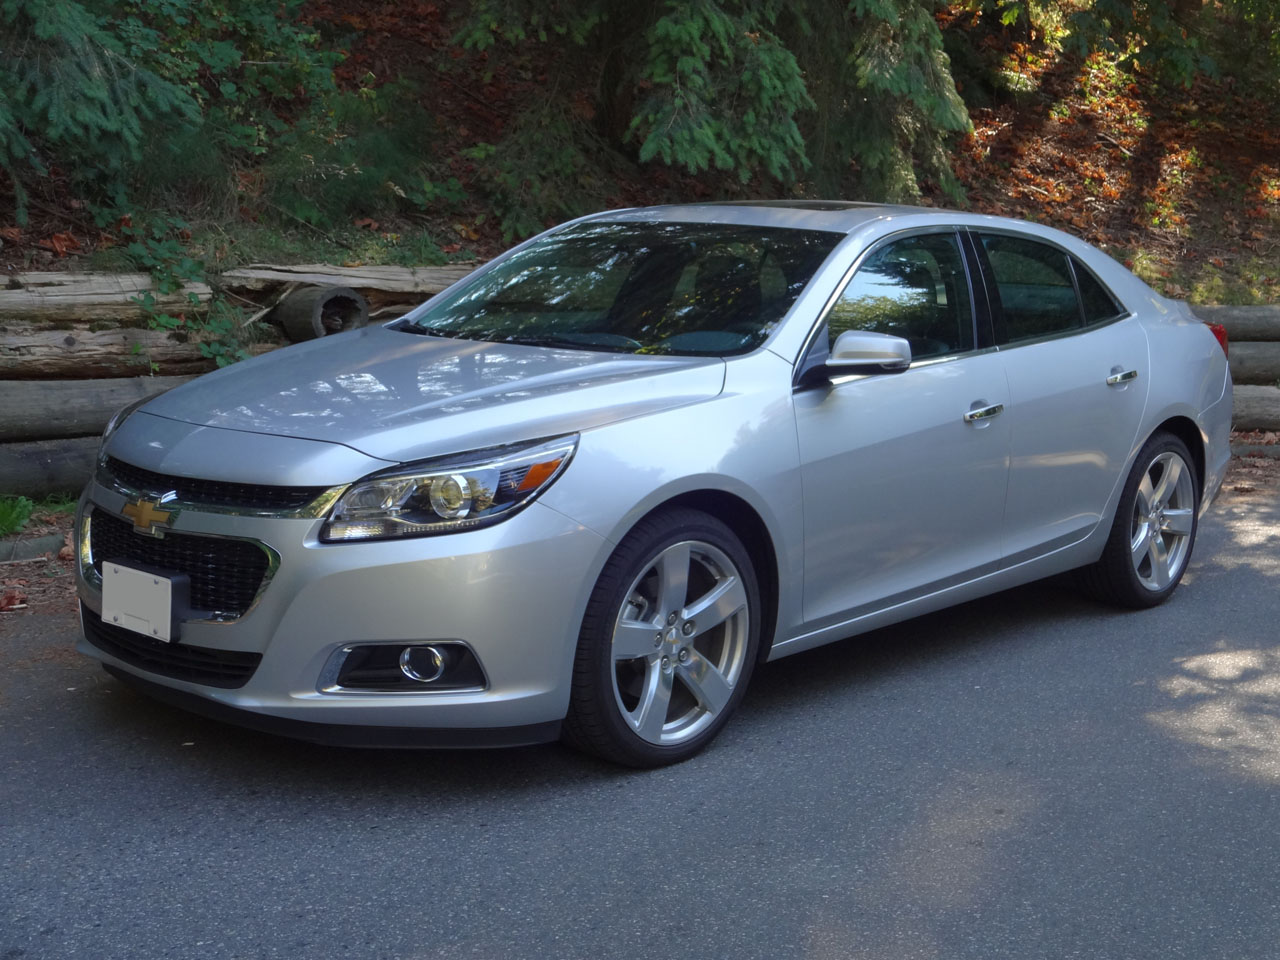 Malibu 2014 chevrolet malibu ltz : 2014 Chevrolet Malibu LTZ Road Test Review | CarCostCanada